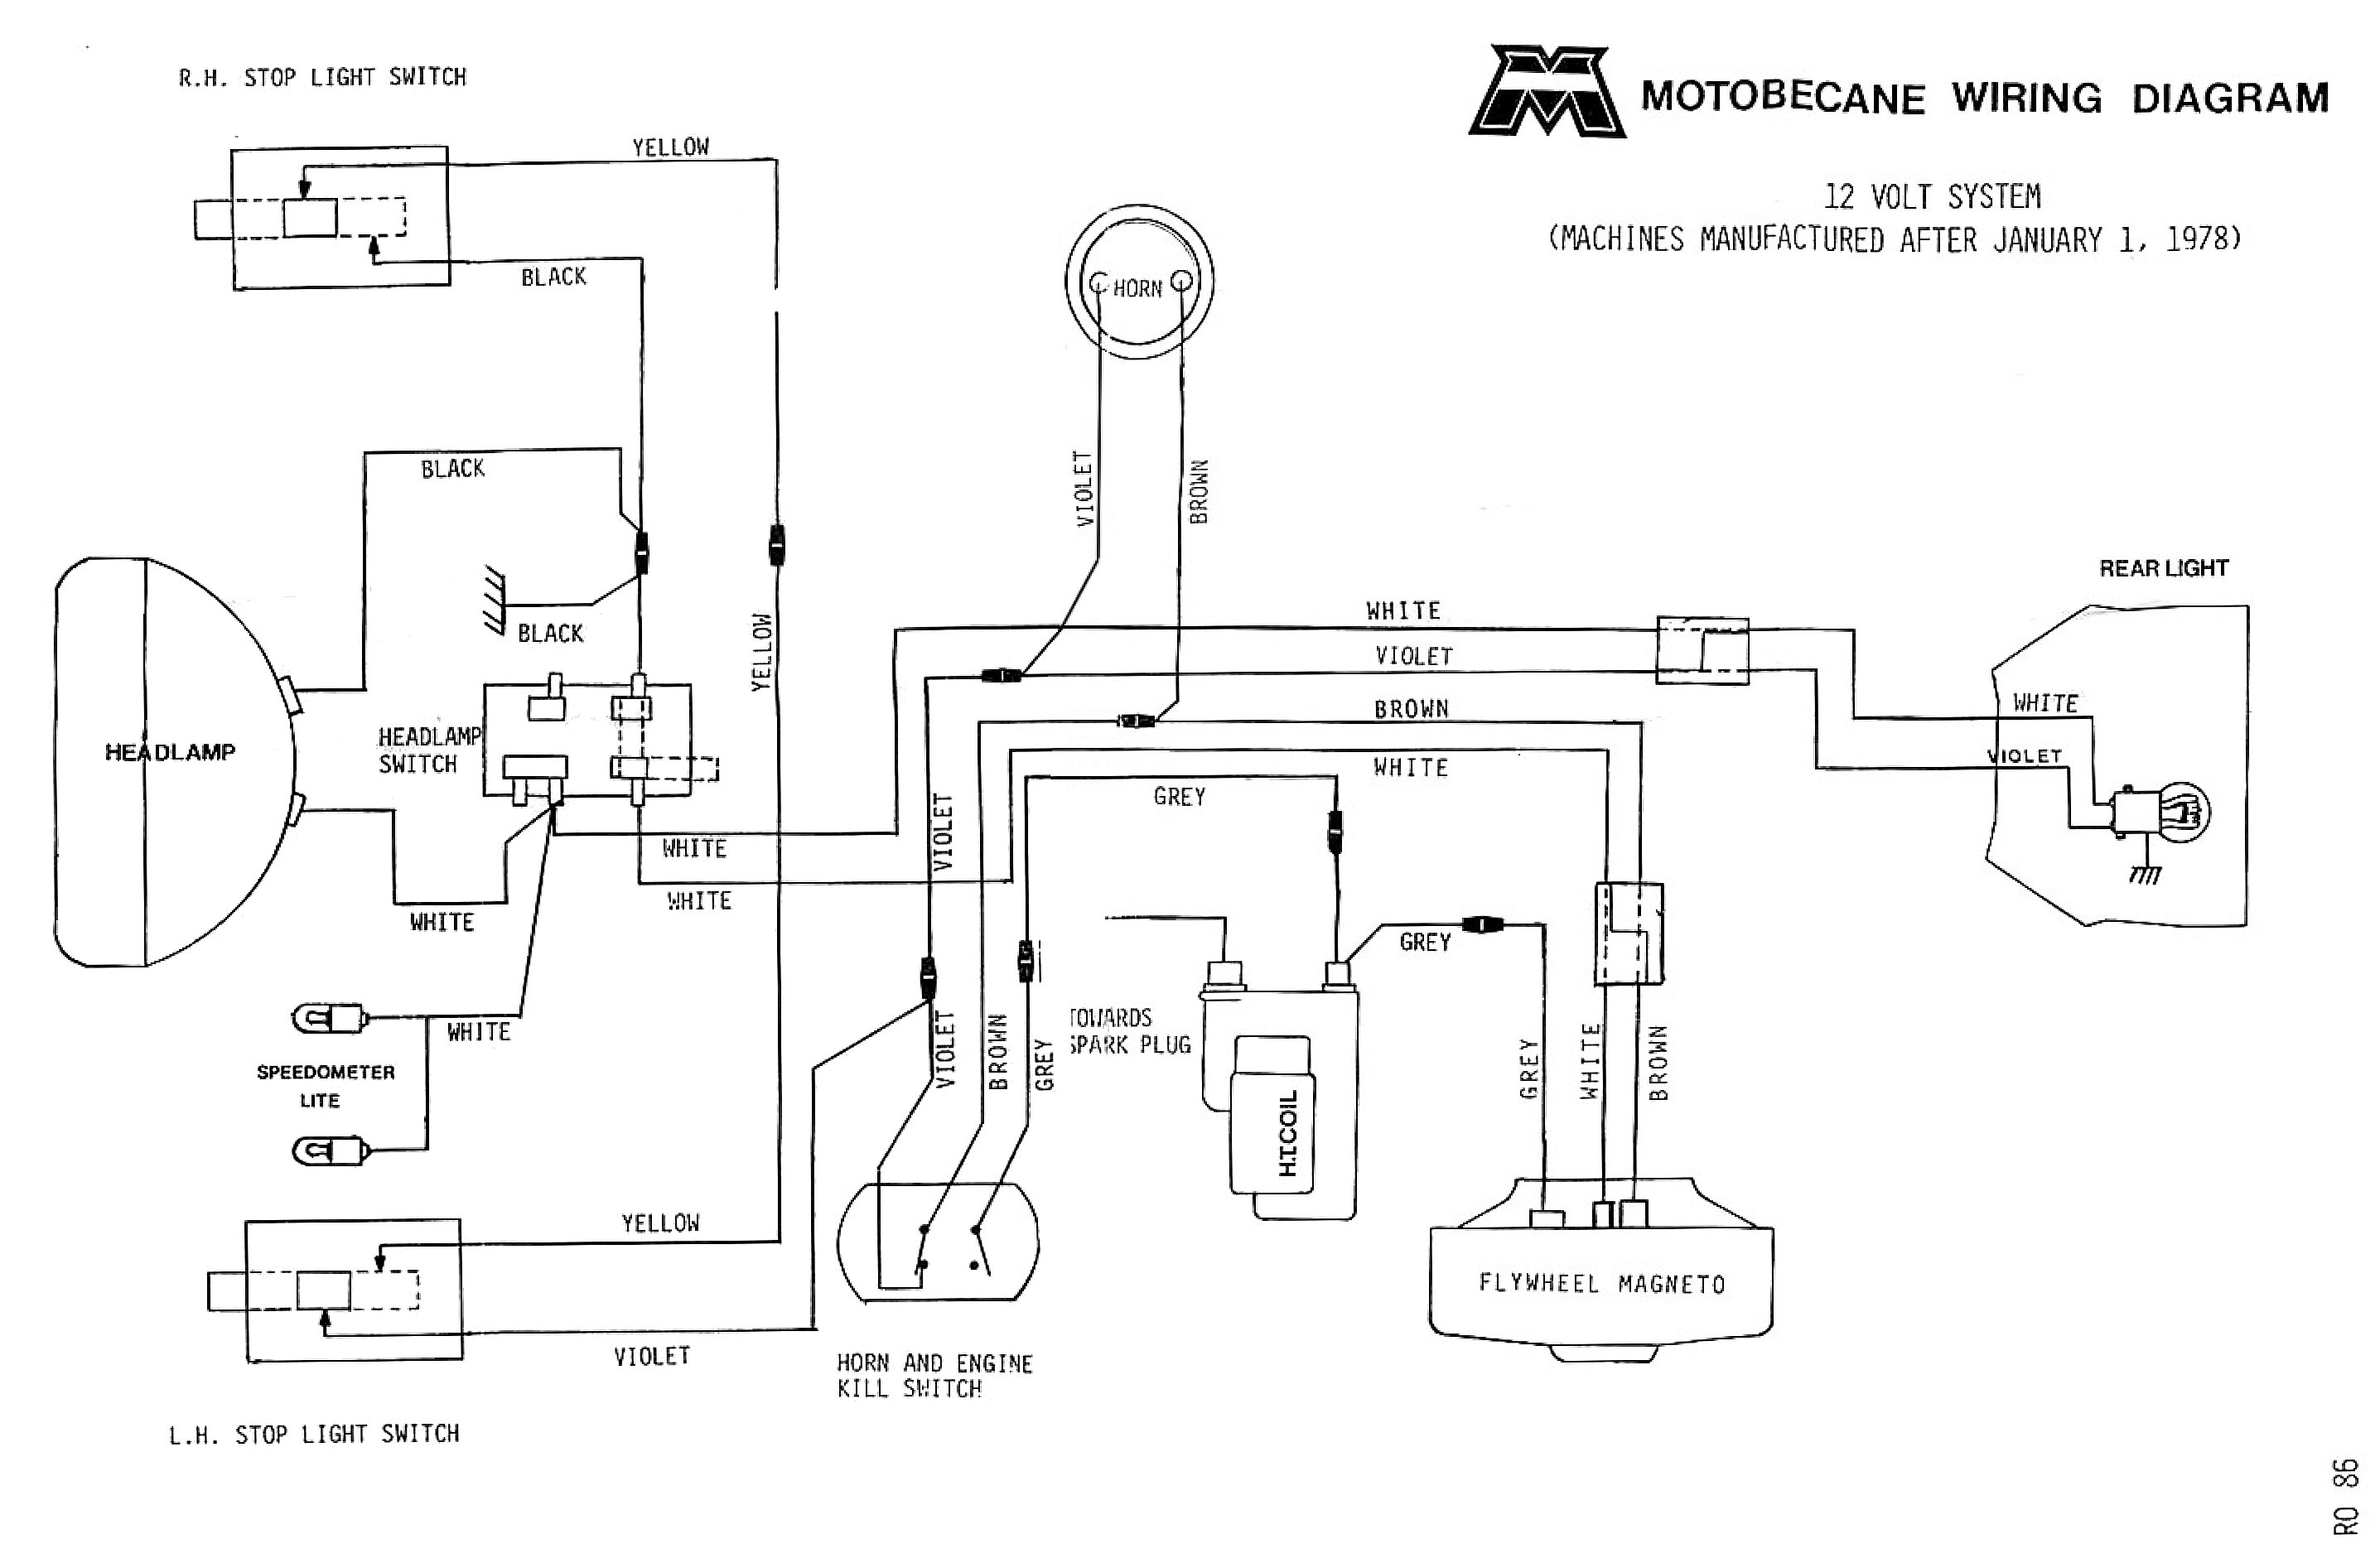 ford 8n wiring system wiring diagram8n ford tractor rear axle diagram together with ford tractor wiringford 8n wiring system wiring diagram